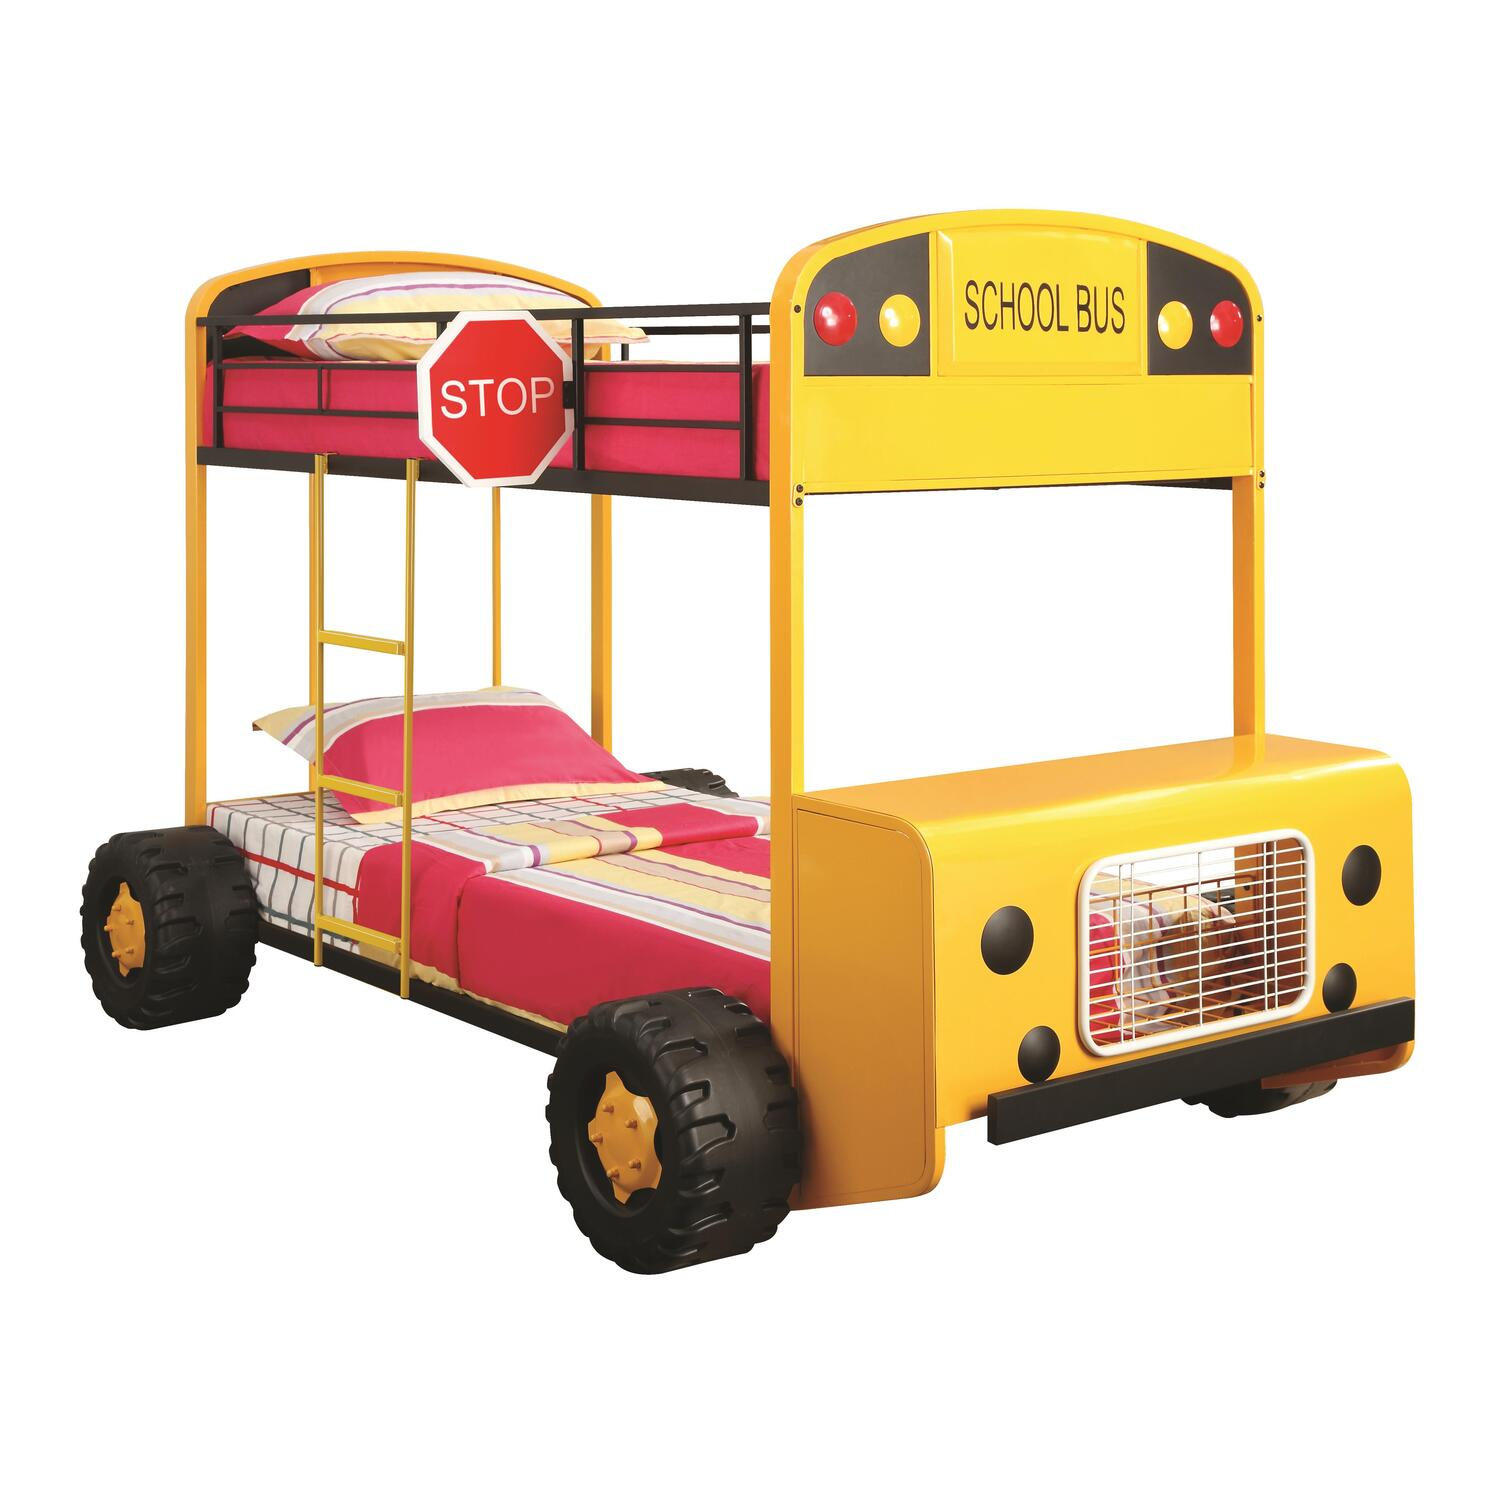 School Bus Twin Size Bed With Front Table and Storage ... |School Bus Bed